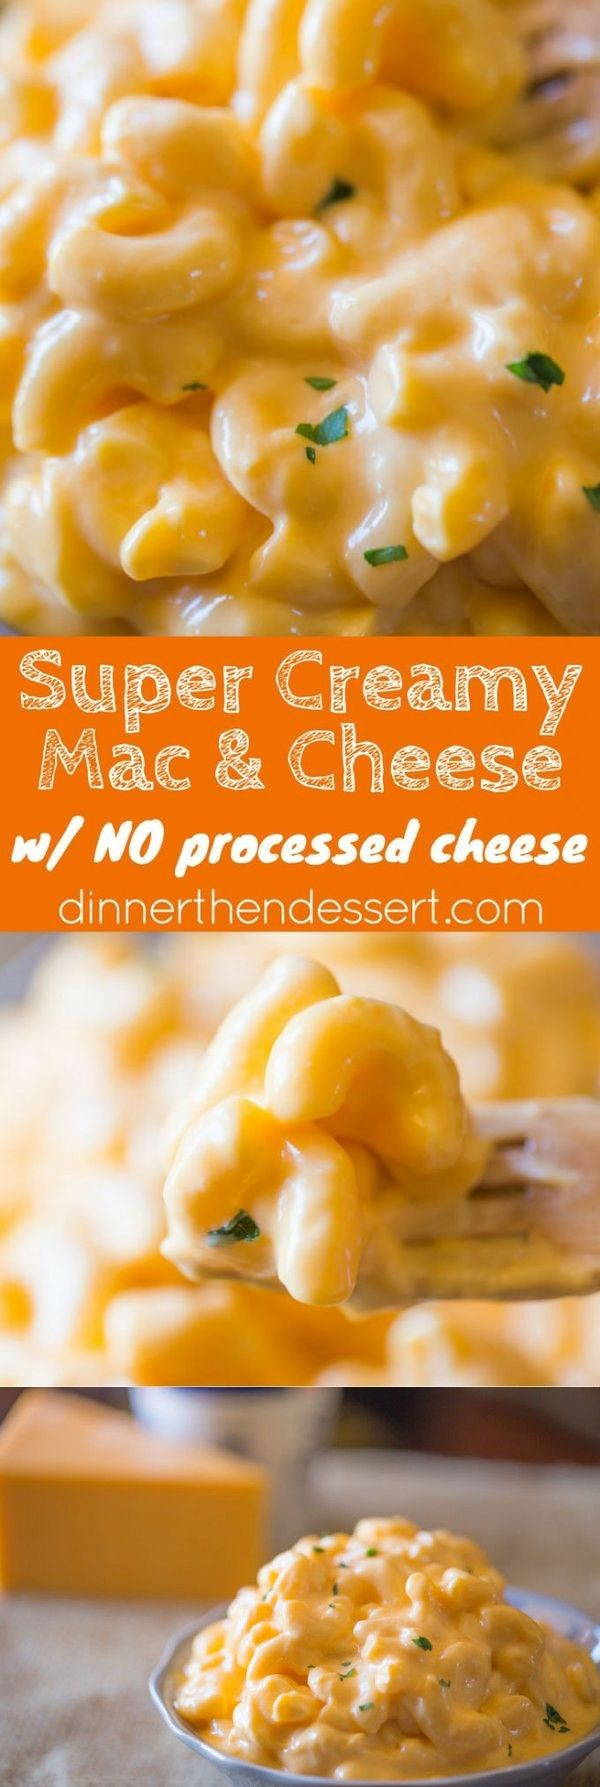 Super Creamy Macaroni And Cheese Recipe Macaroni And Cheese Creamy Macaroni And Cheese Vegetarian Ingredients